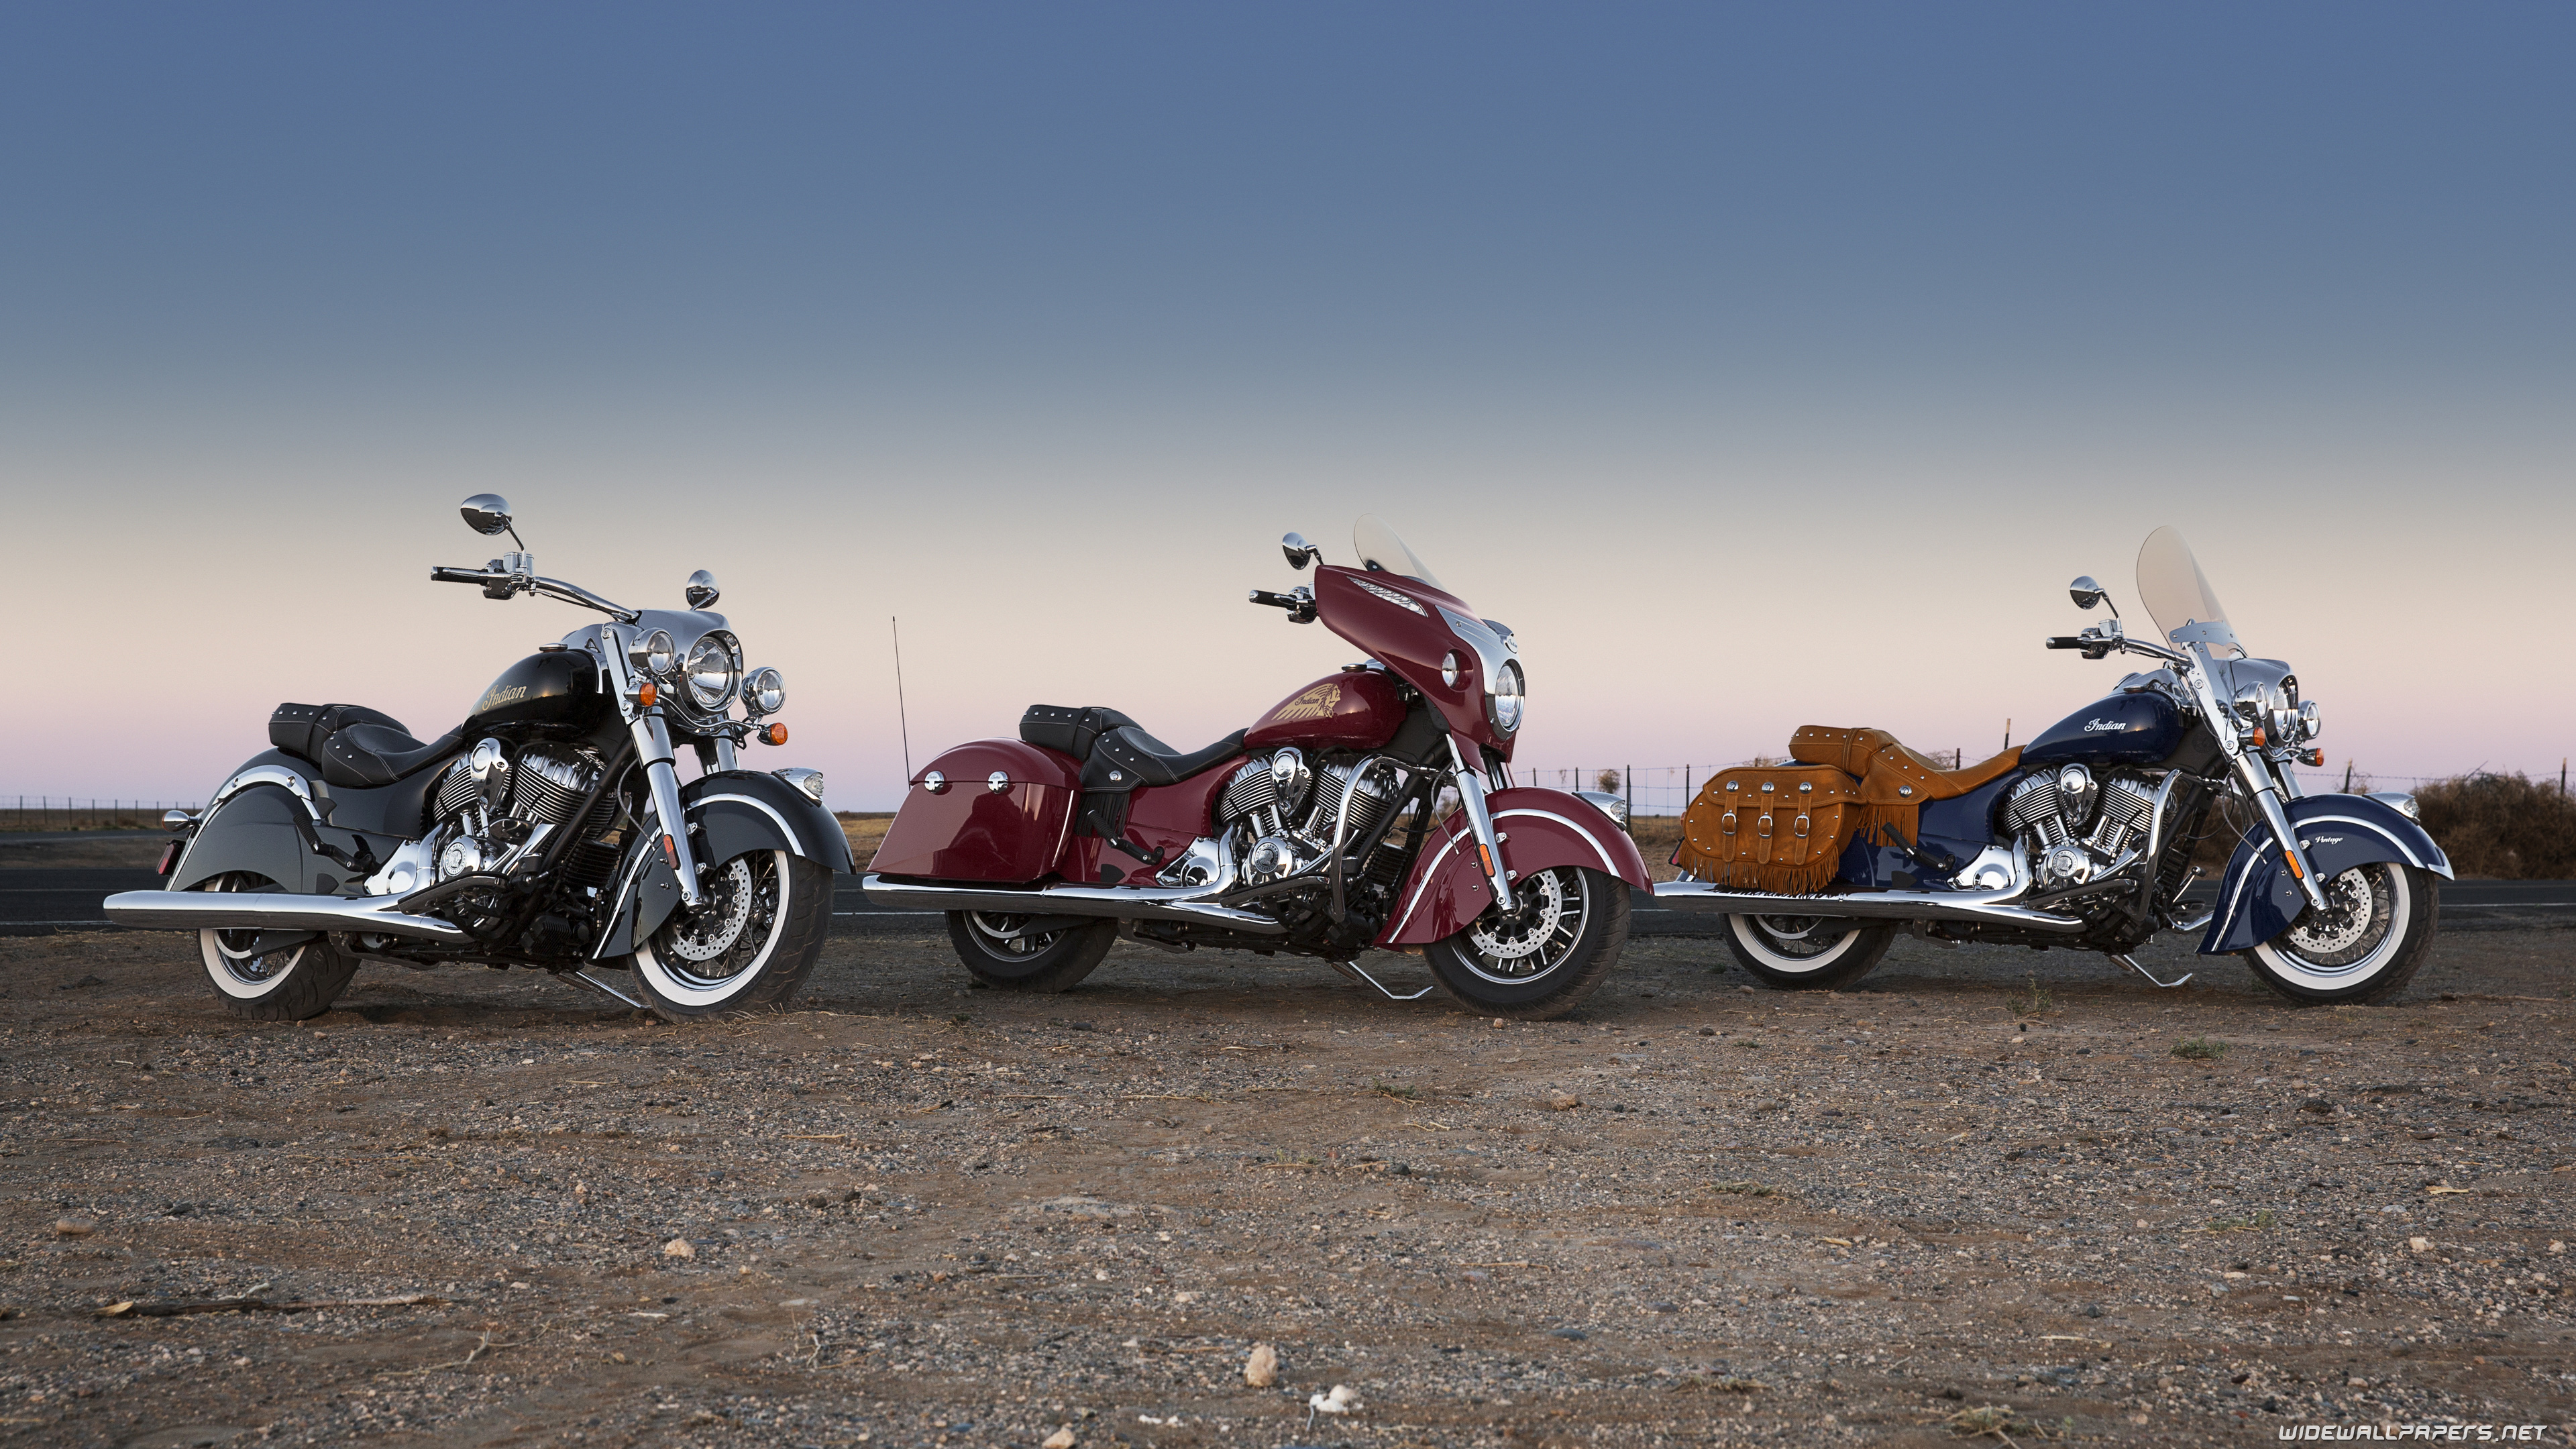 indian chief classic motorcycle desktop wallpapers 4k ultra hd